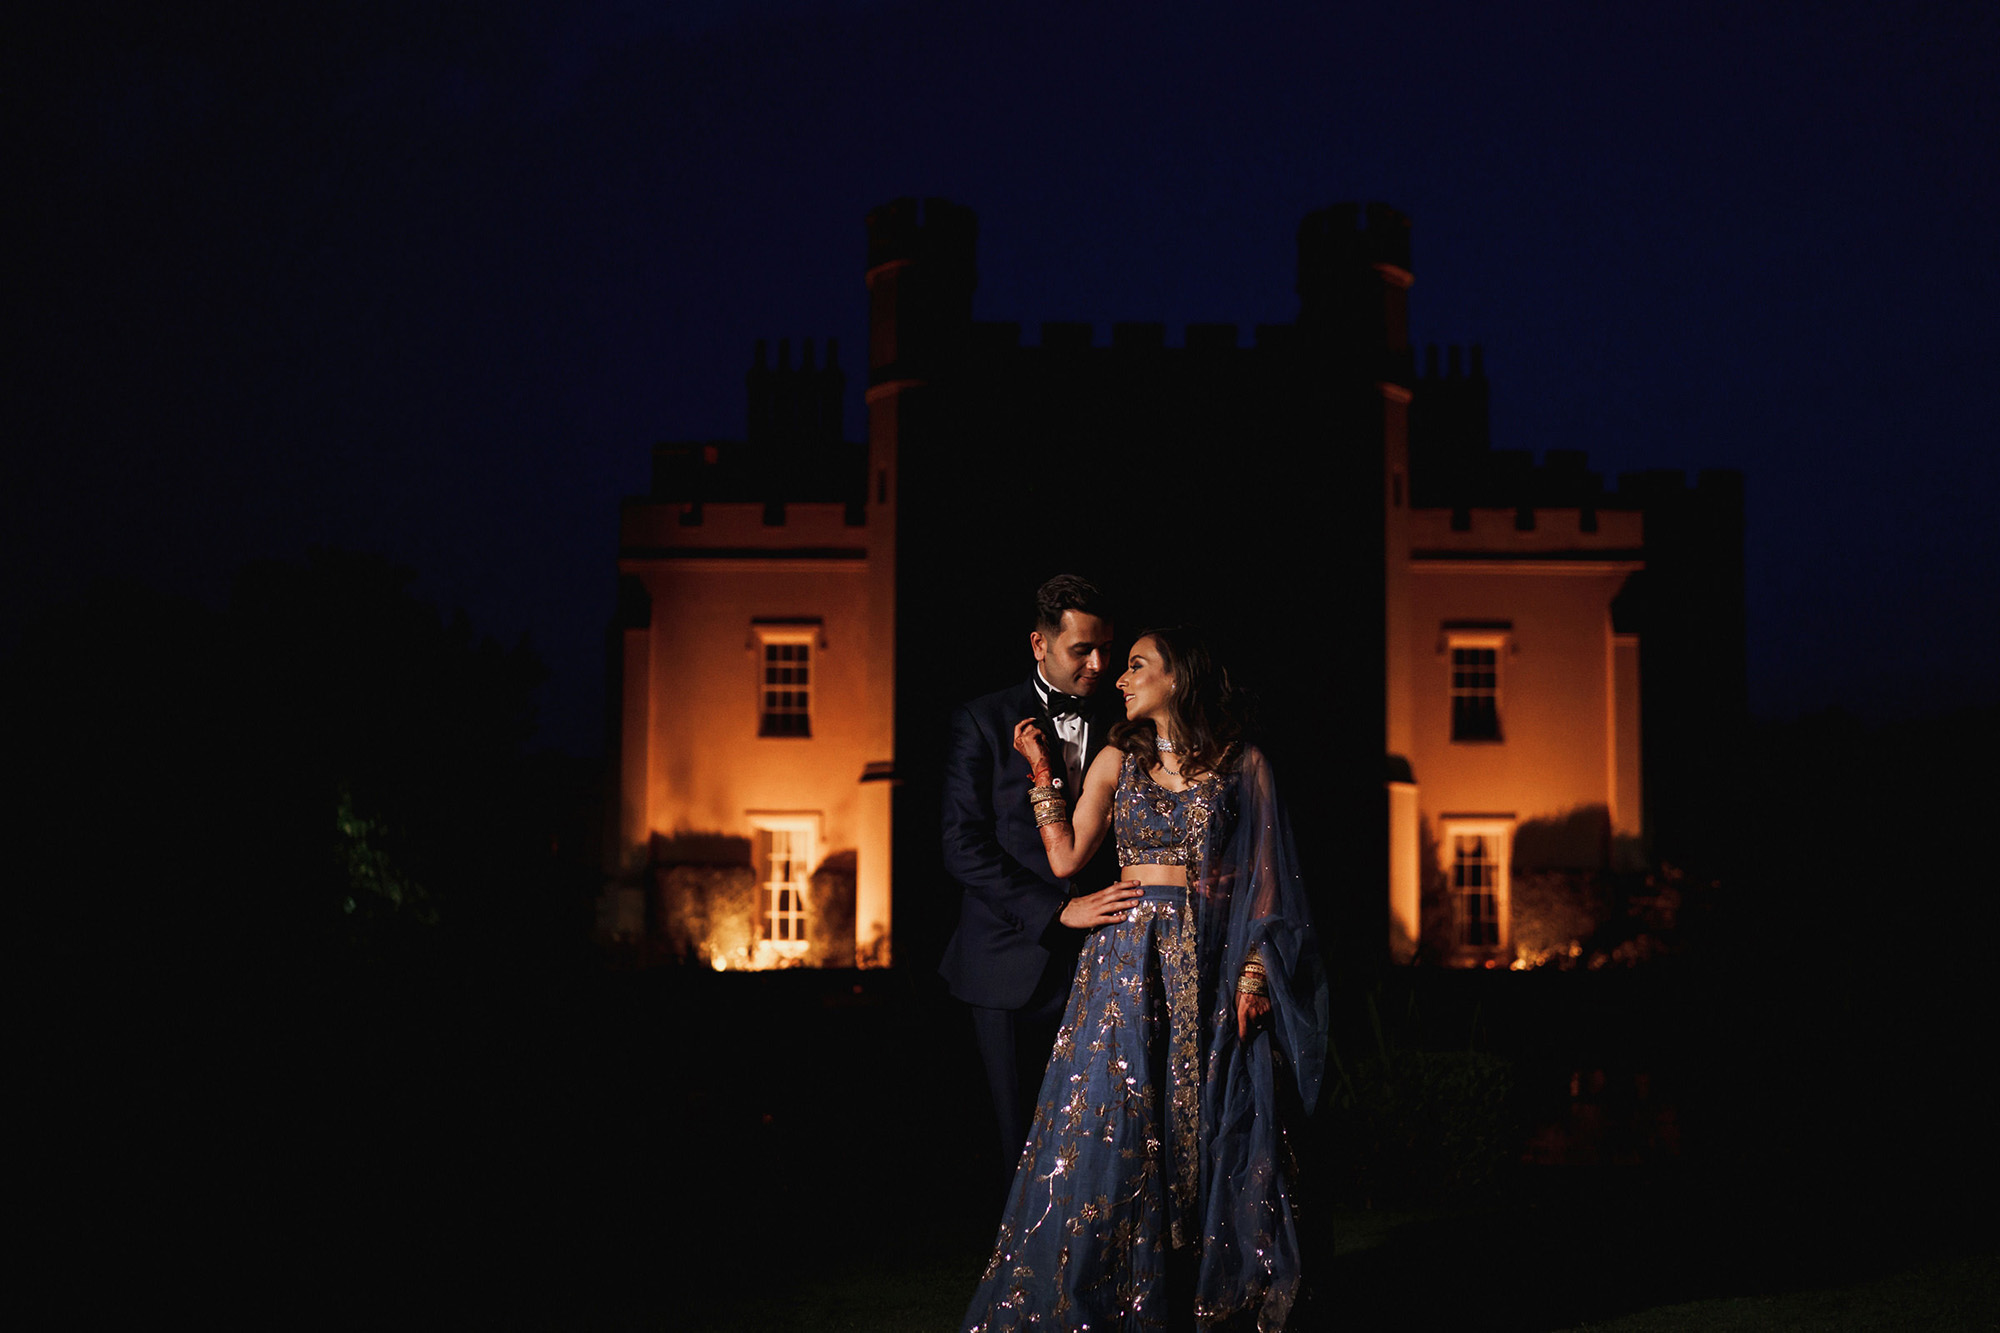 Nighttime portrait of bride and groom at Ditton Manor, Berkshire, England, by Rahul Khona F5